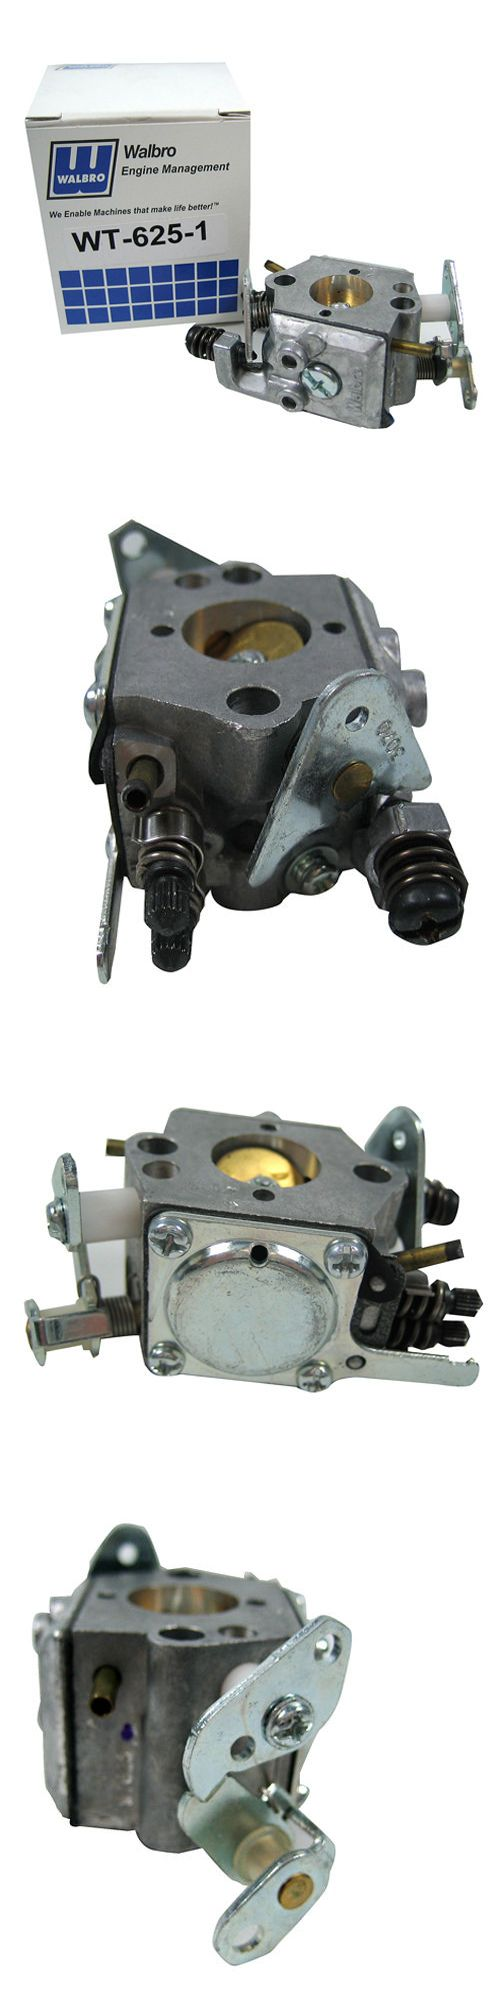 Chainsaw Parts and Accs 85915: Genuine Walbro Wt-625 Carburetor For Poulan Craftsman Chainsaw 530071621 -> BUY IT NOW ONLY: $33.75 on eBay!